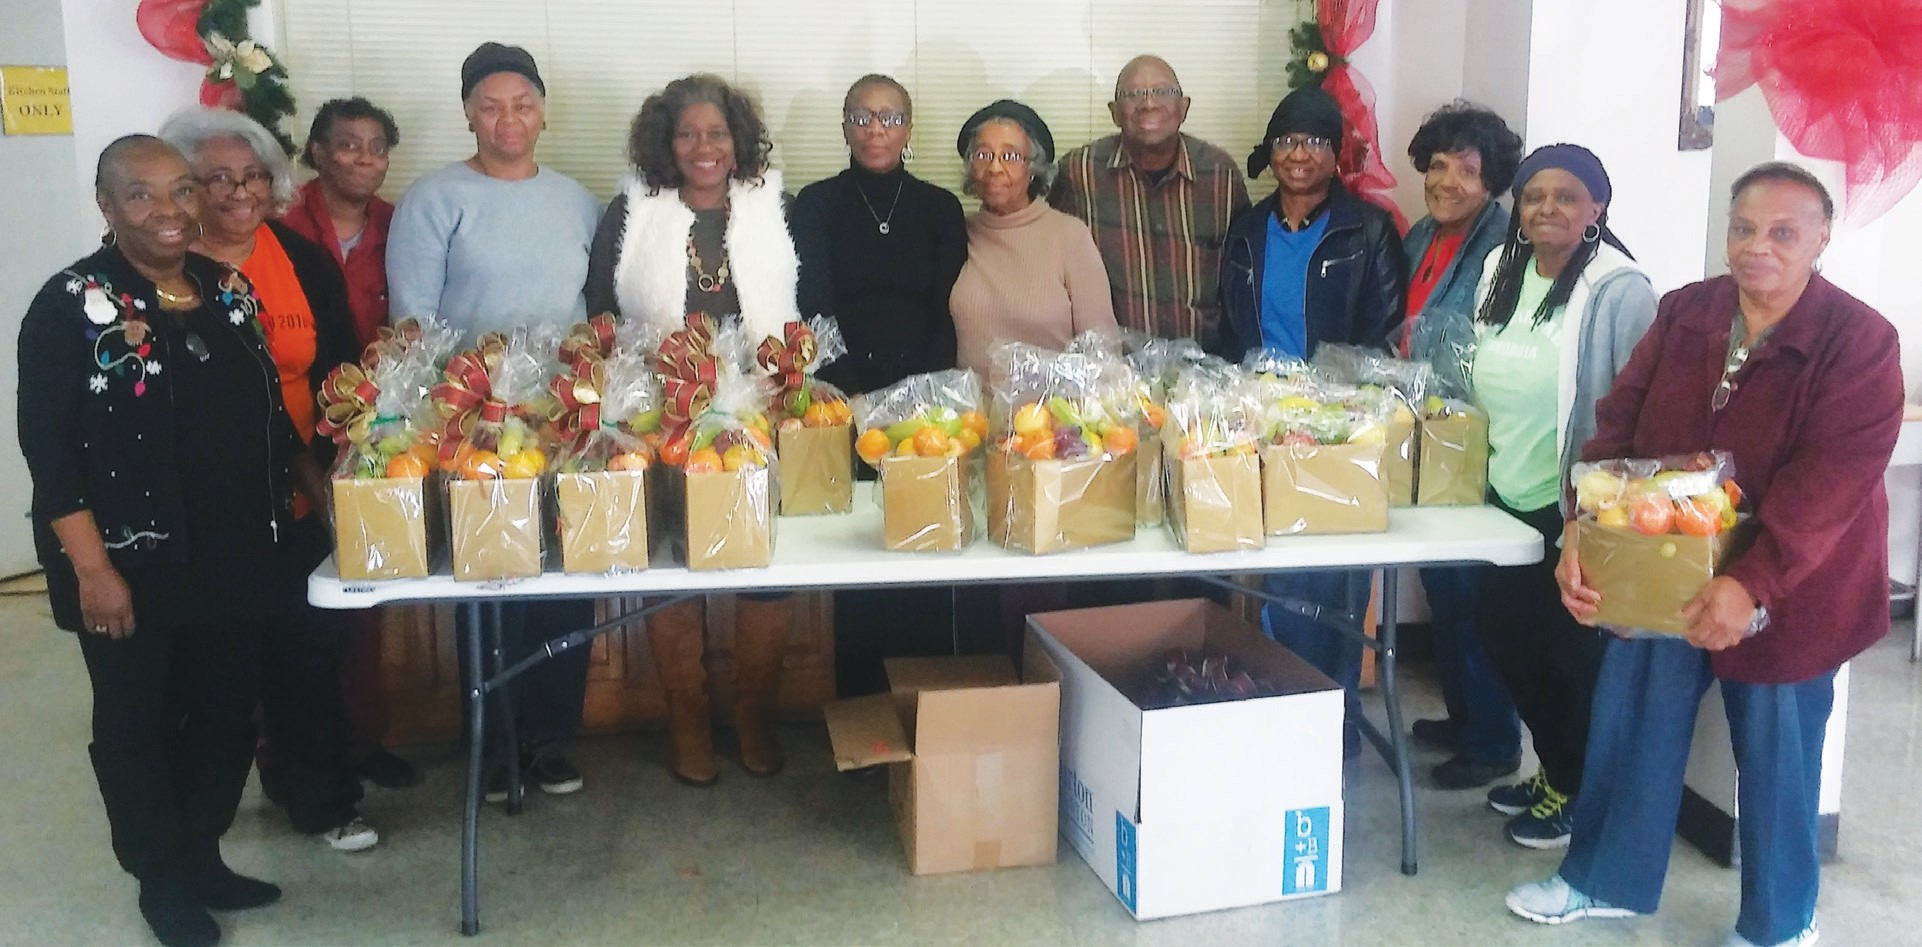 The Tremont Temple Home Mission Ministry prepared over 40 fruit and gift baskets for the sick and shut in. Preparing the baskets is an annual project of the Home Mission during the Christmas Holiday season. The Deacons delivered the gift baskets. Sis. Annette Mitchell chaired the Fruit and Gift Basket project. Sis. Phyllis Garrison is the President. Rev. Quentin J. Morris, Sr. is the Pastor